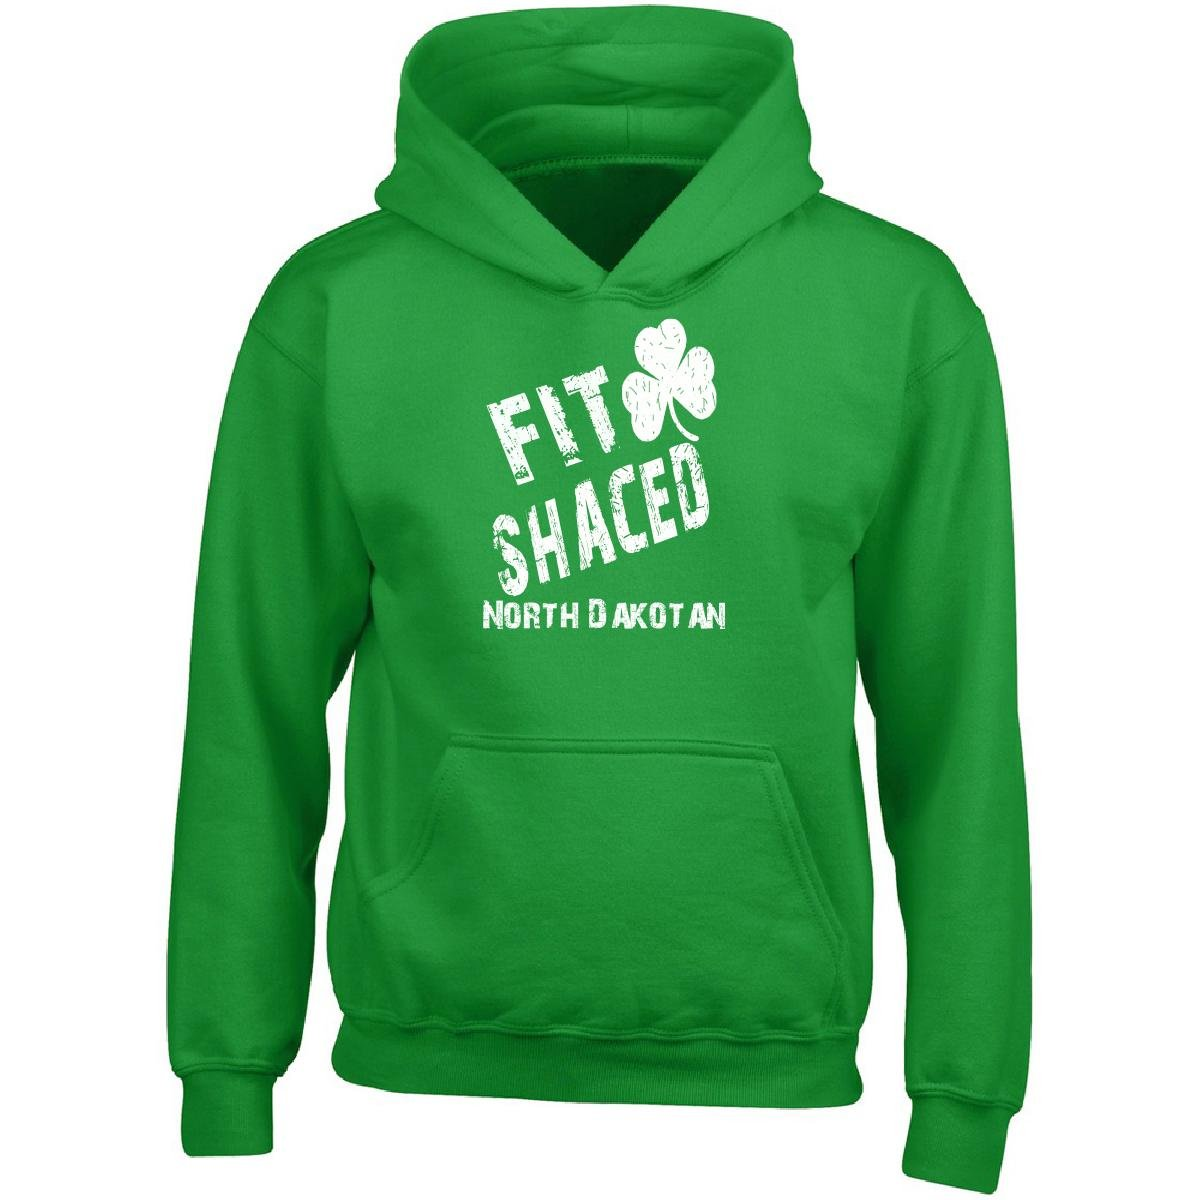 Adult Hoodie North Dakotan Fit Shaced Drunk St Patricks Day